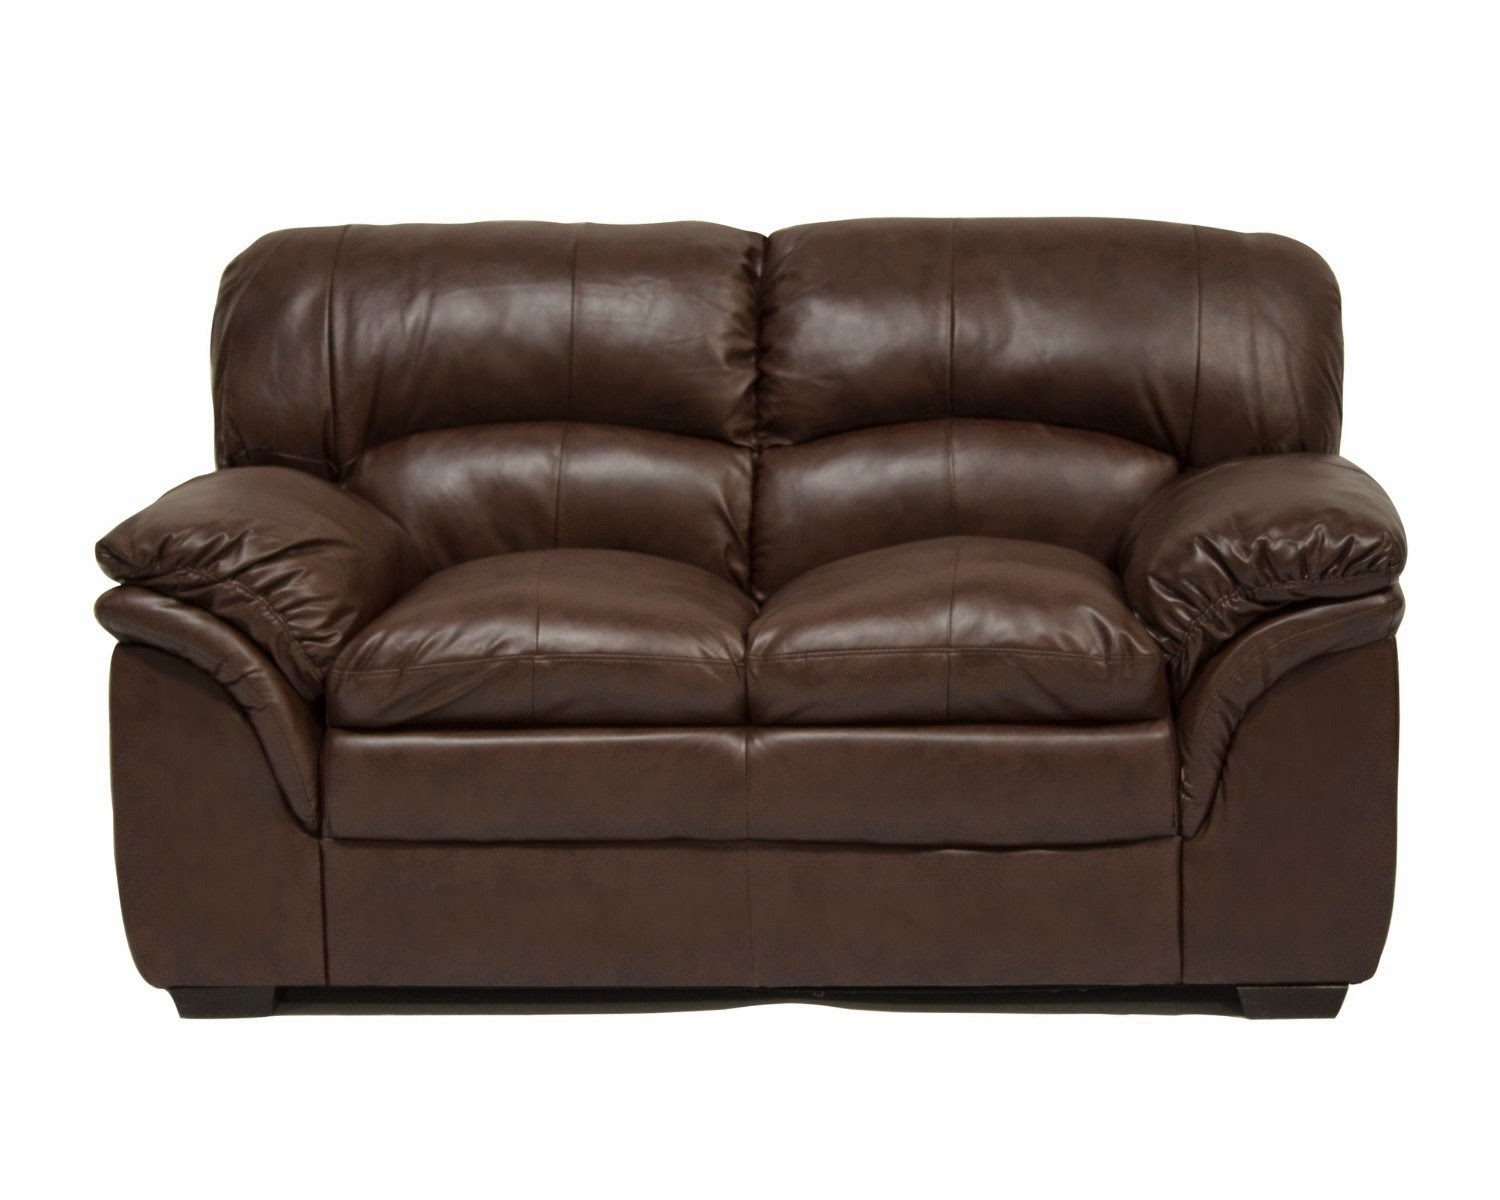 Reclining Sofas For Sale Cheap Two Seater Recliner Sofa Uk